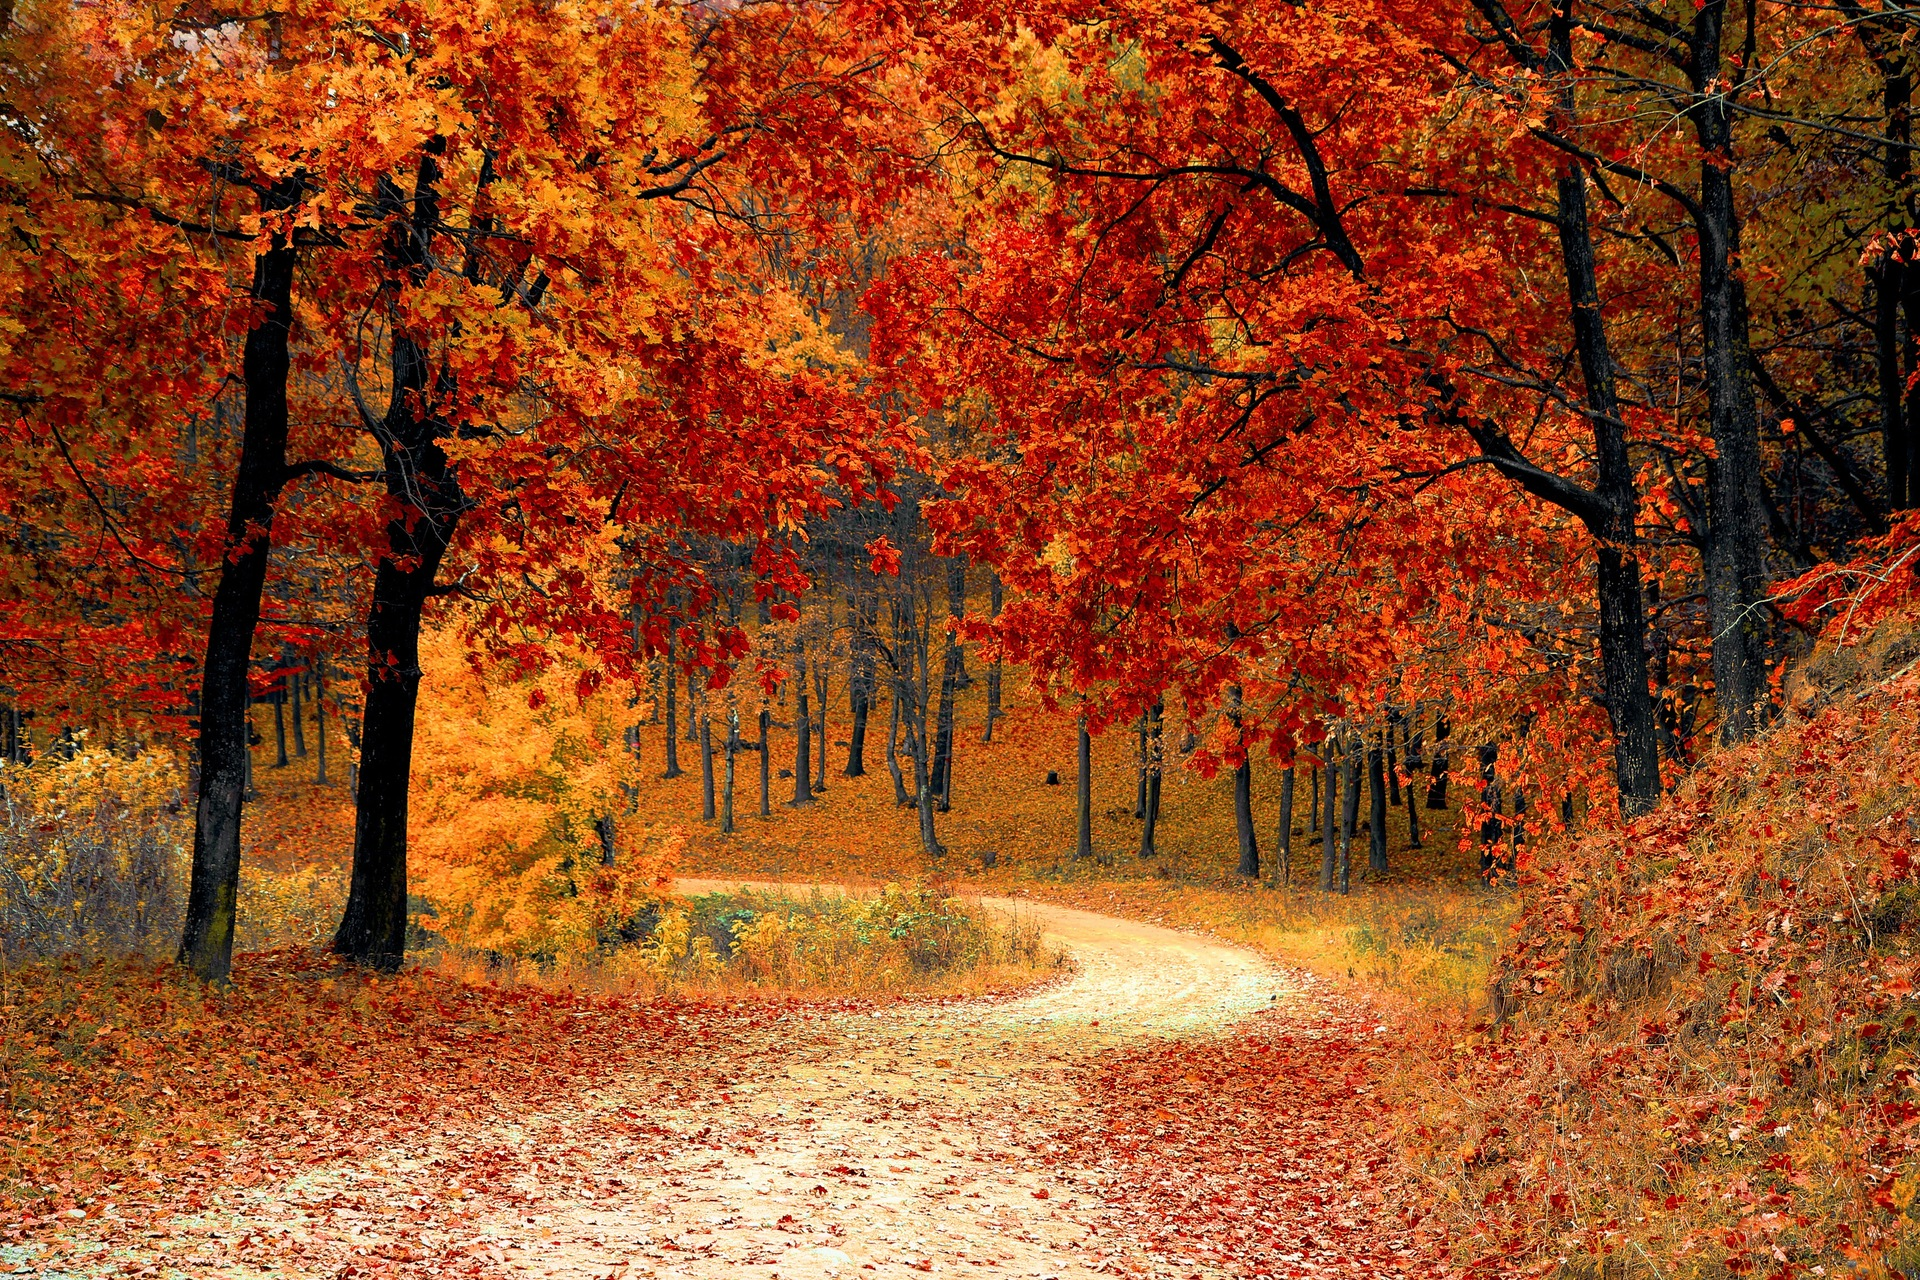 fall-autumn-red-season.jpg